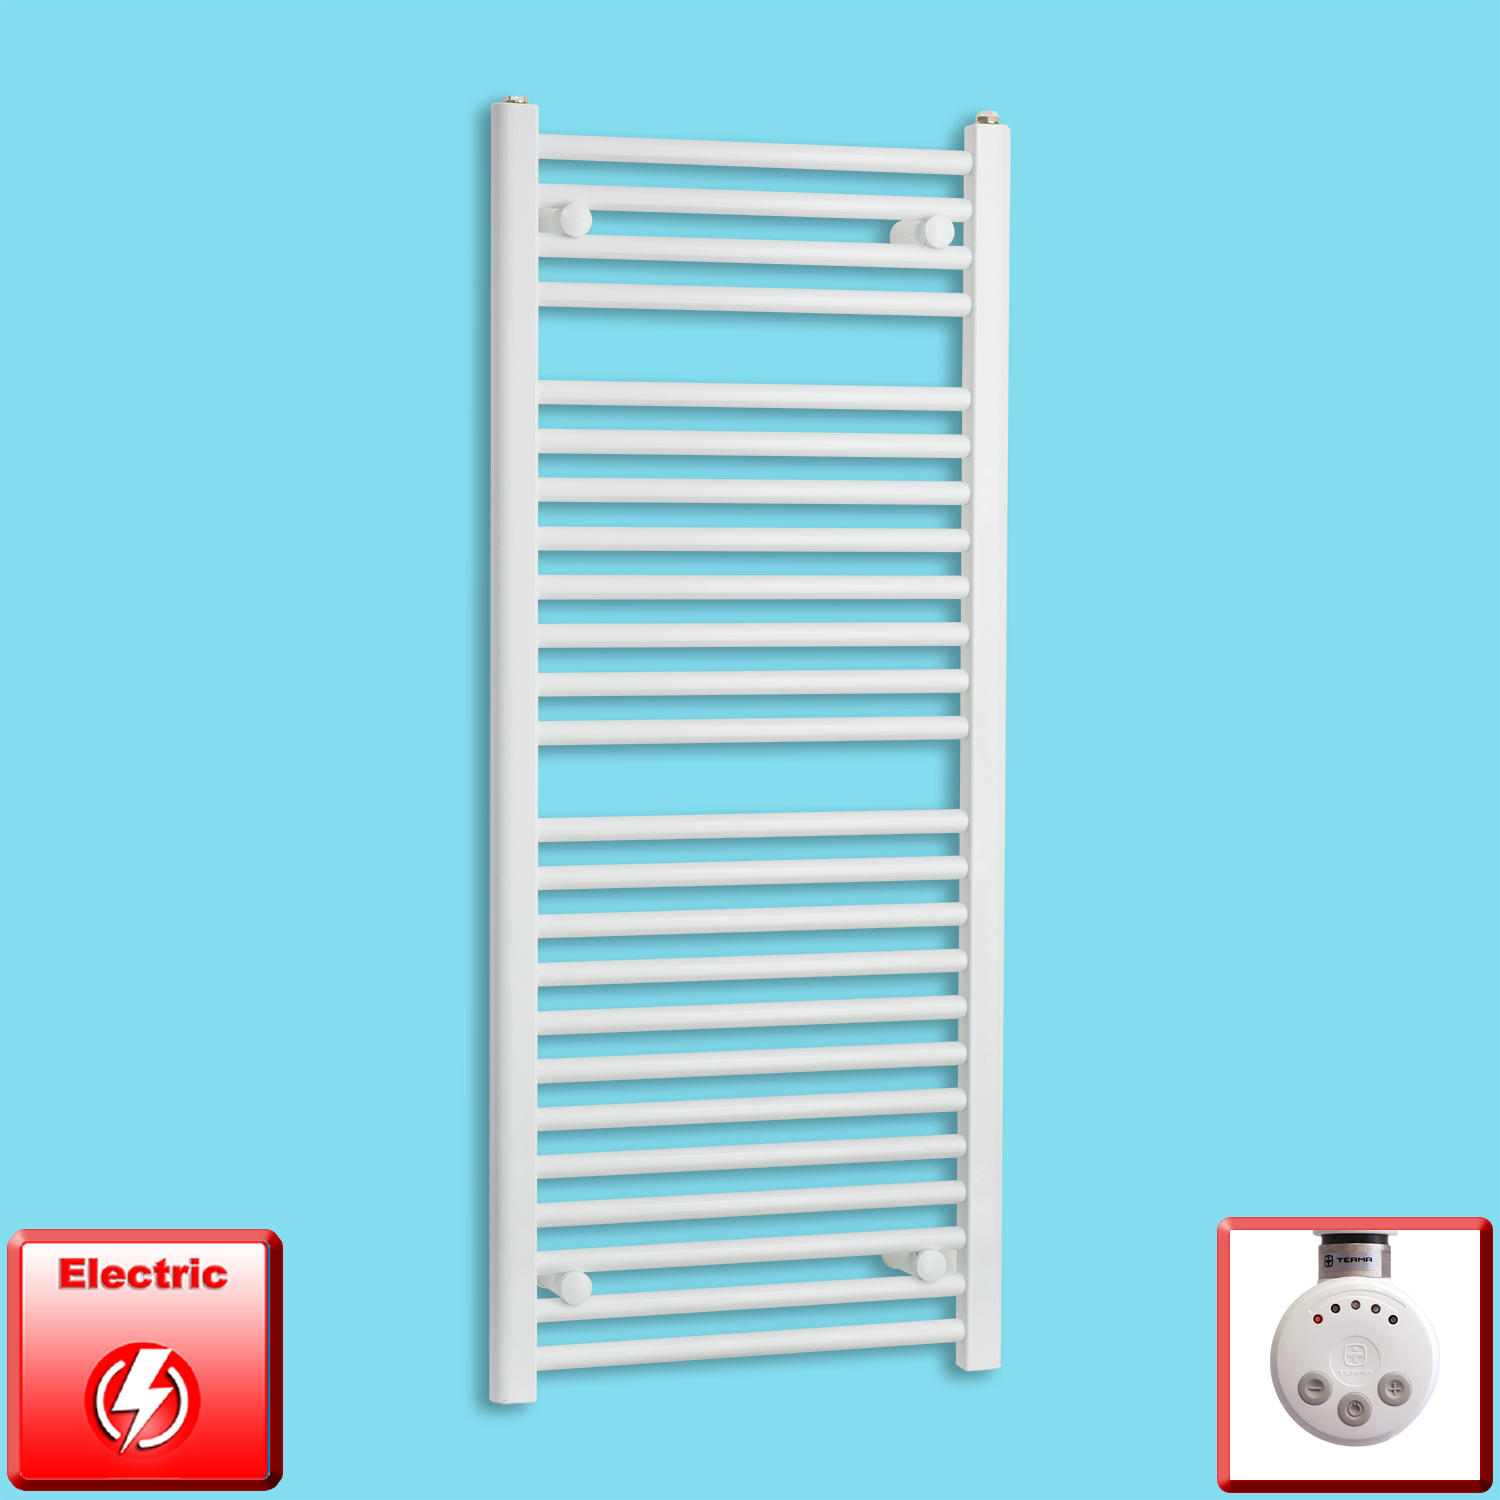 400mm Wide 1200mm High Pre-Filled White Electric Towel Rail Radiator With Thermostatic MEG Element